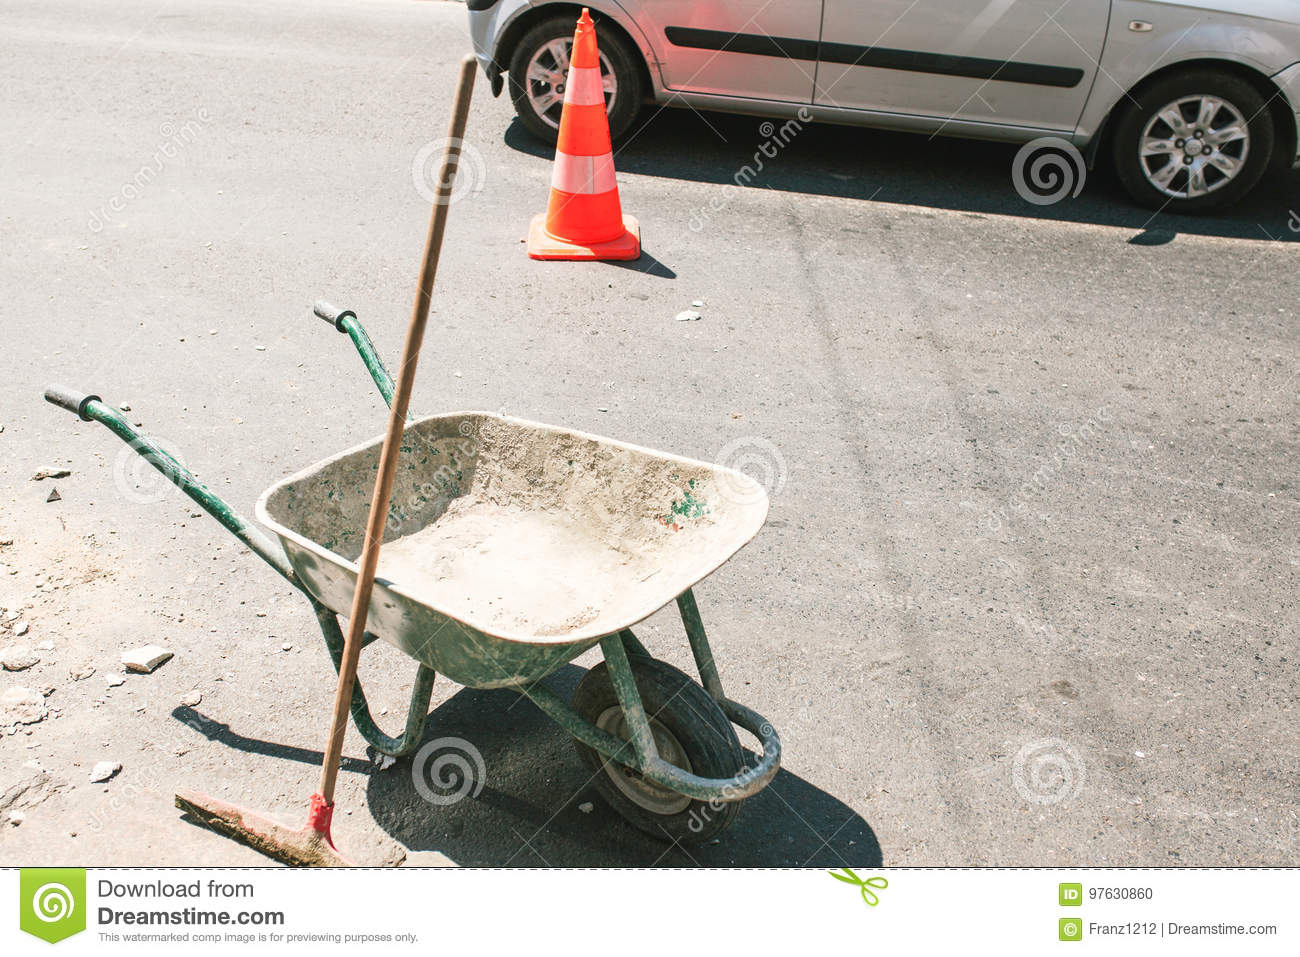 Rustic dirty construction wheelbarrow with push broom on the street, orange road construction cone in the background.